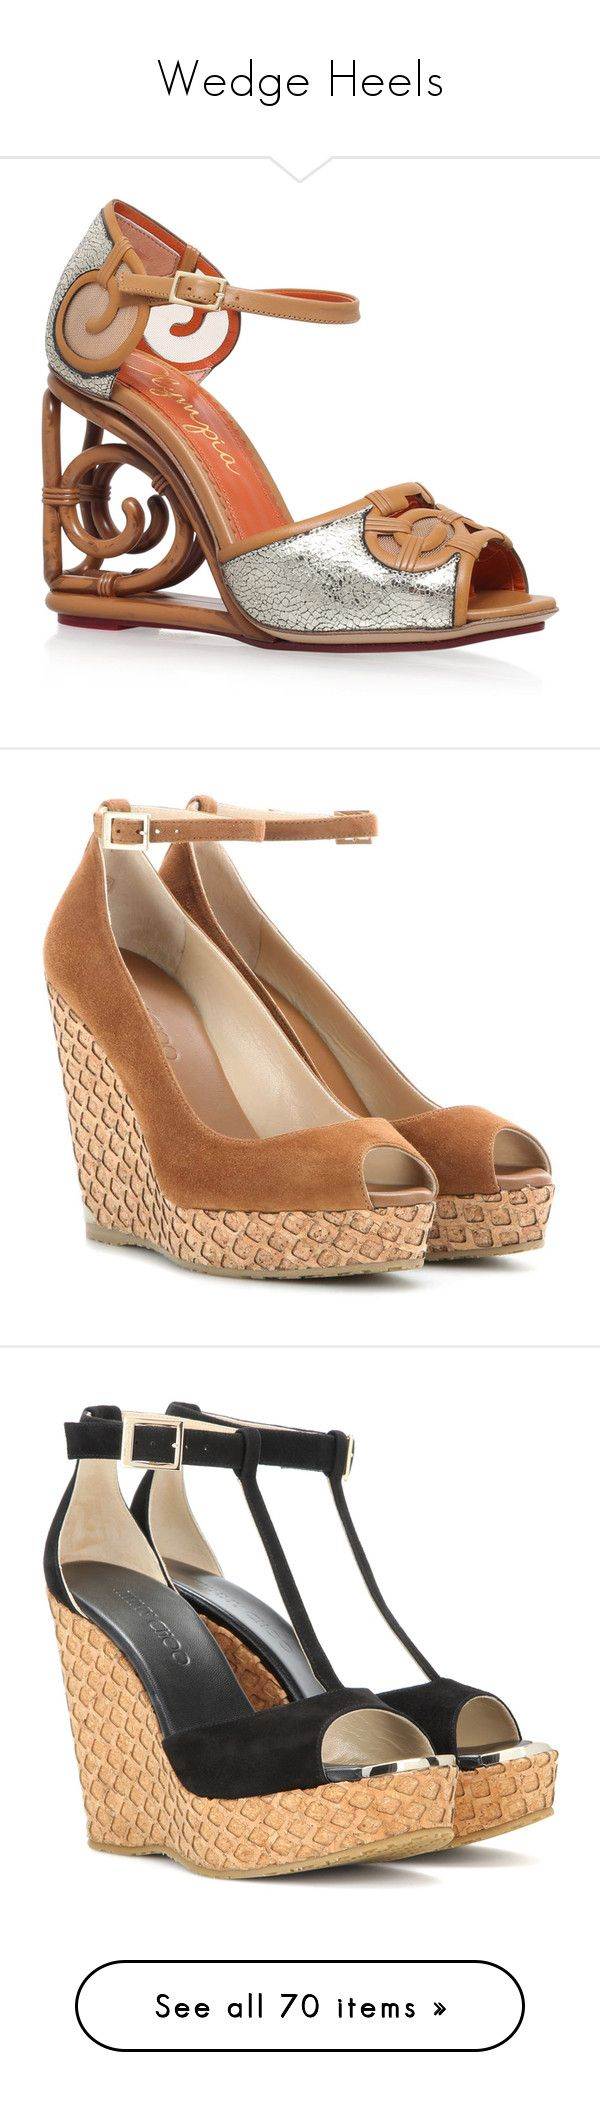 """""""Wedge Heels"""" by tiryn13leucine ❤ liked on Polyvore featuring shoes, sandals, ankle strap sandals, silver shoes, wedge sandals, silver wedge sandals, ankle wrap sandals, wedges, brown and wedge shoes"""